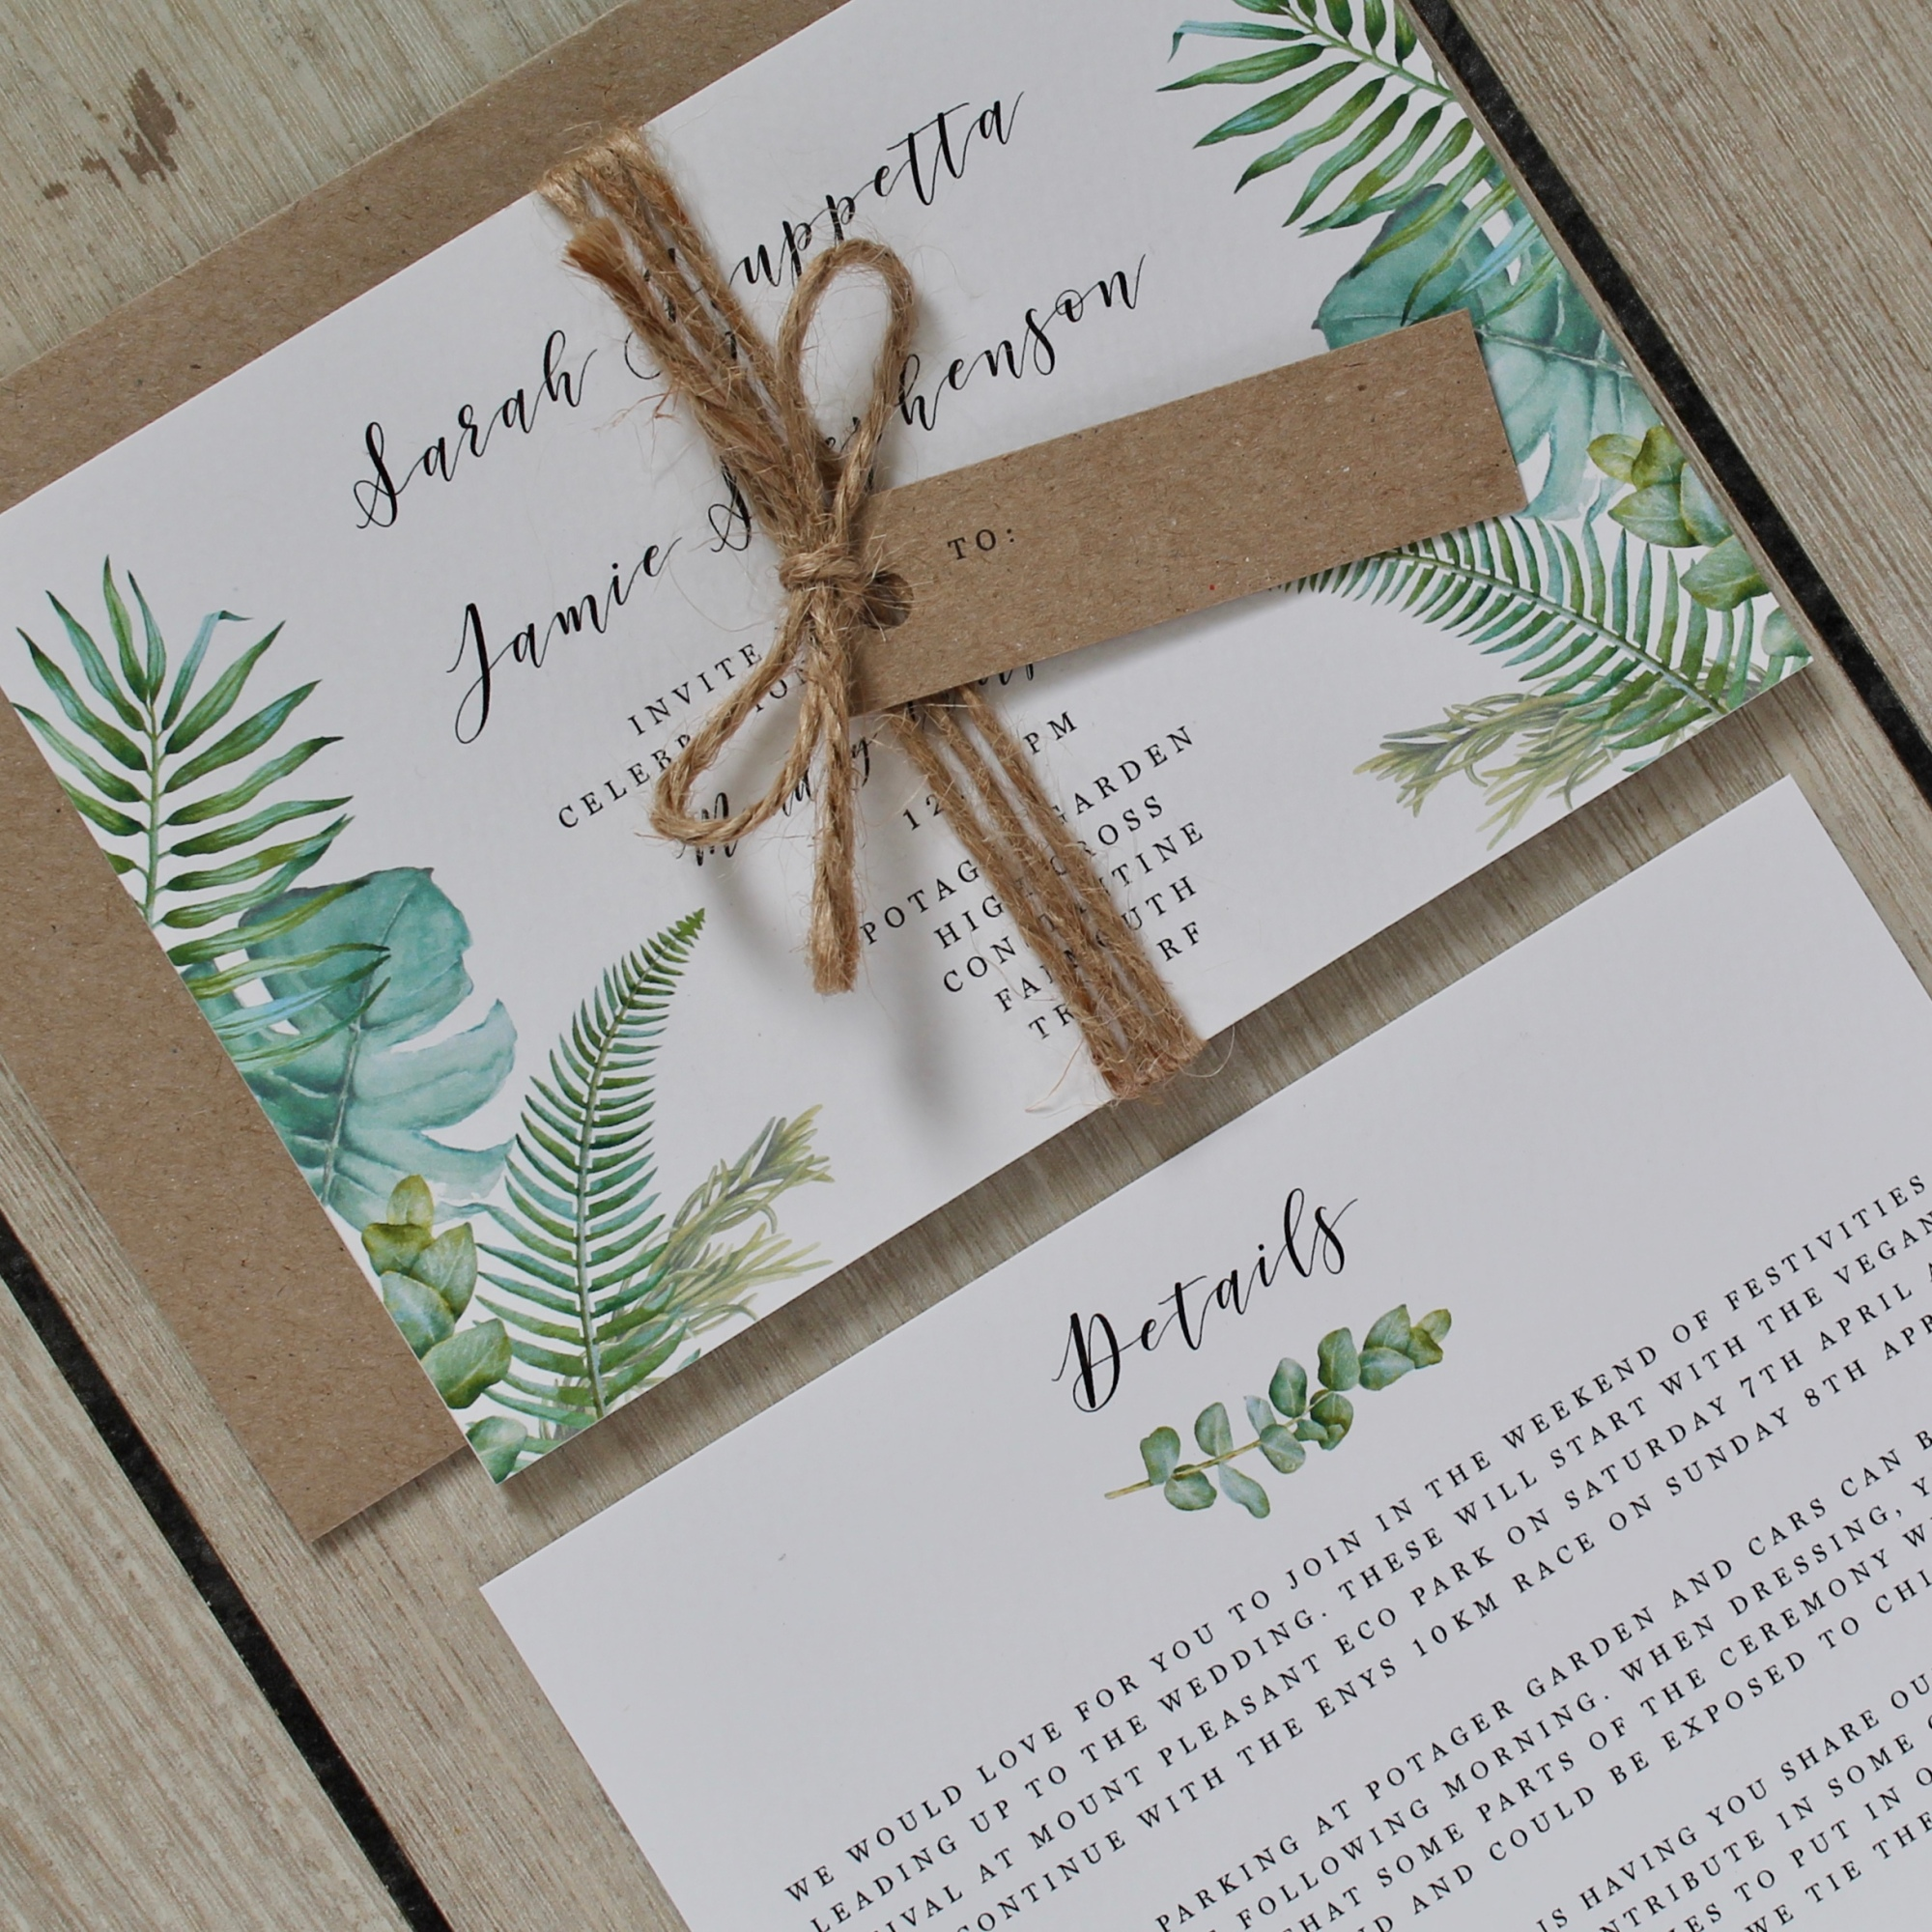 big leaf, foliage, exotic, tropical, gardens, greenhouse, lush, green and white, rustic, wedding, invitations, stationery, stationary, invites, cornwall, Cornish, calligraphy, watercolour, floral, Laura likes